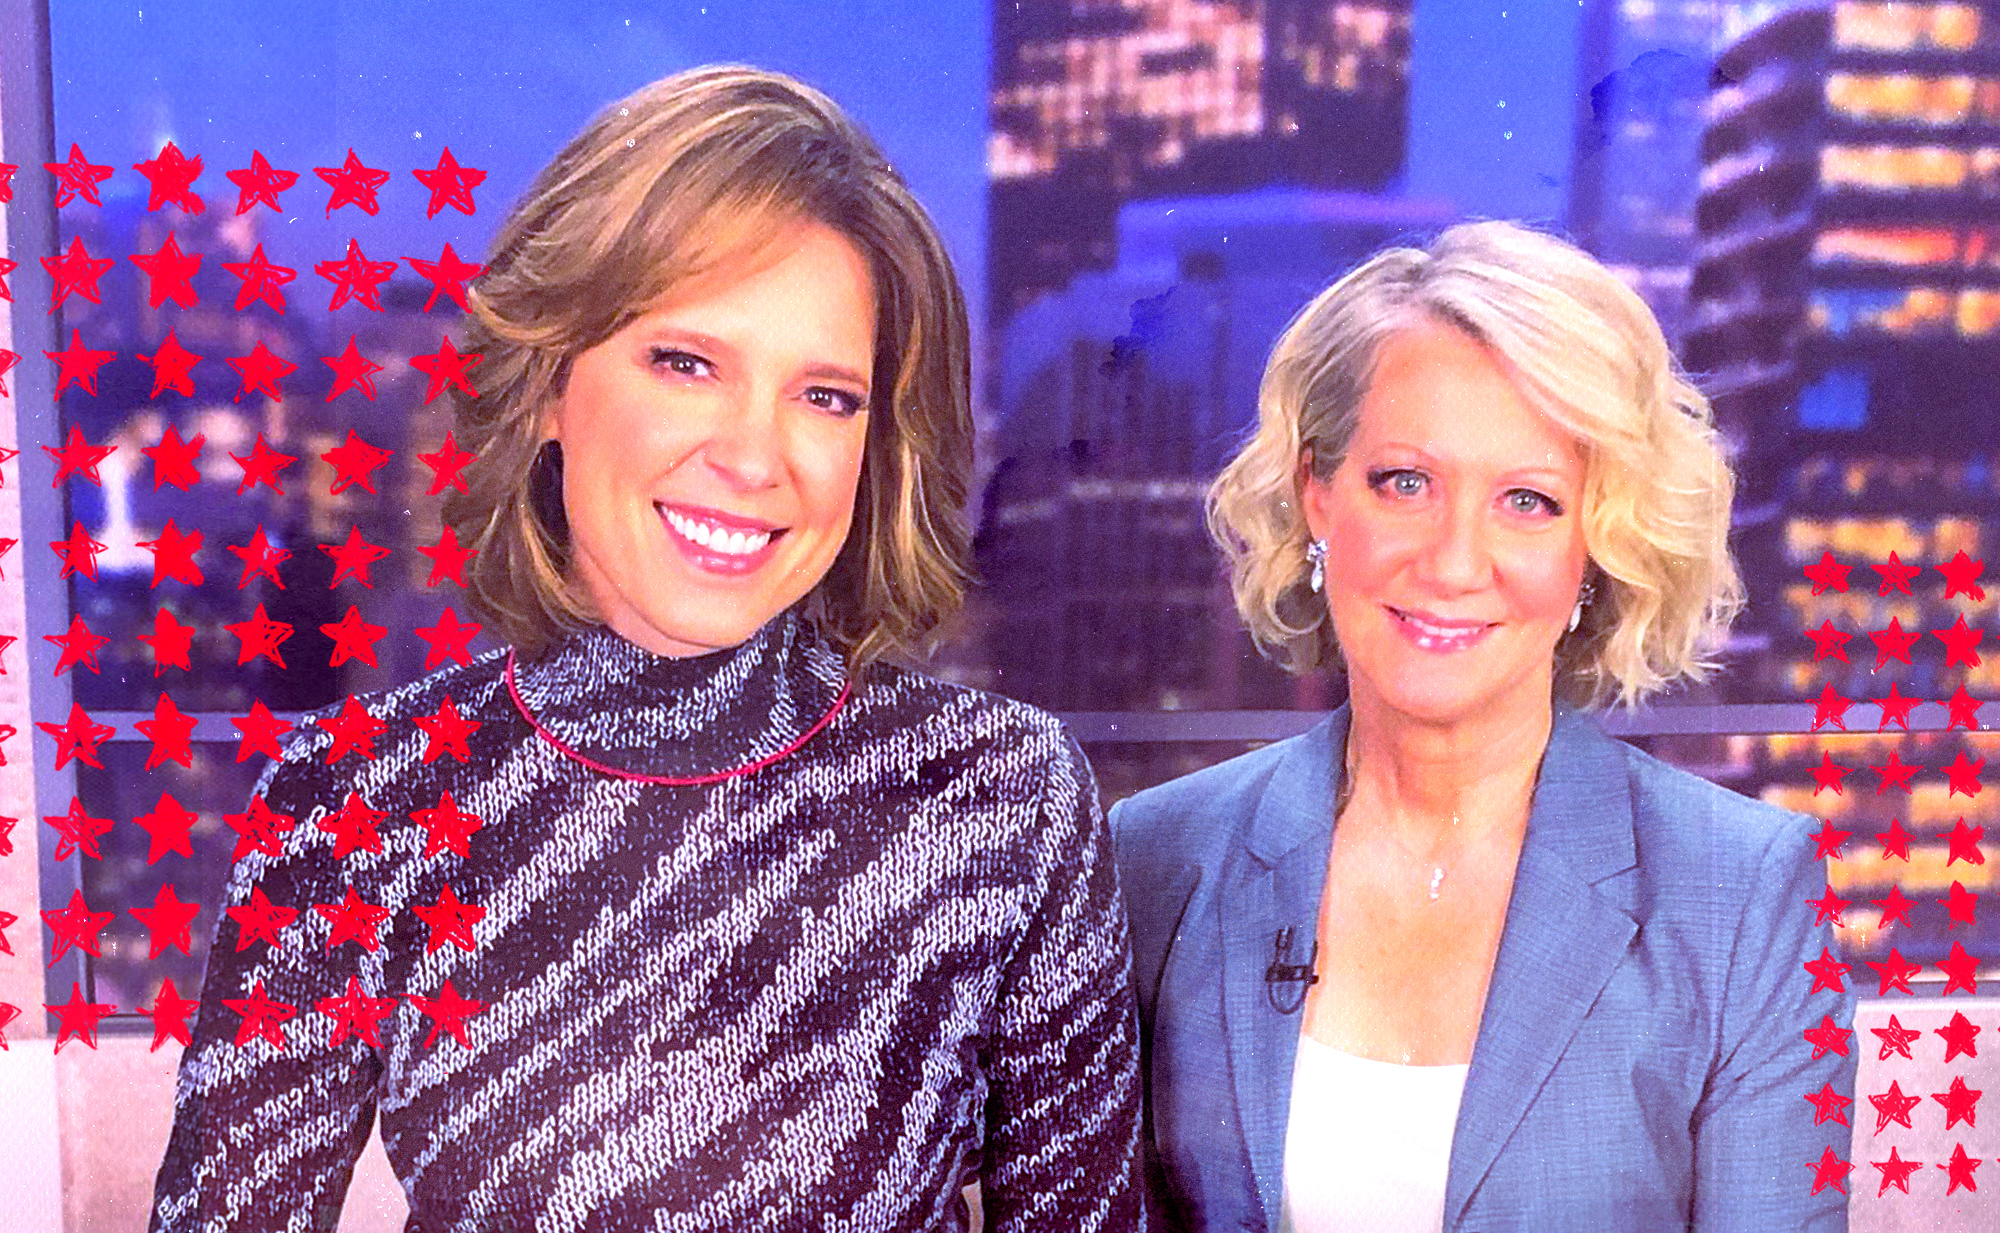 Photo of Hannah Storm and Andrea Kremer smiling side by side.